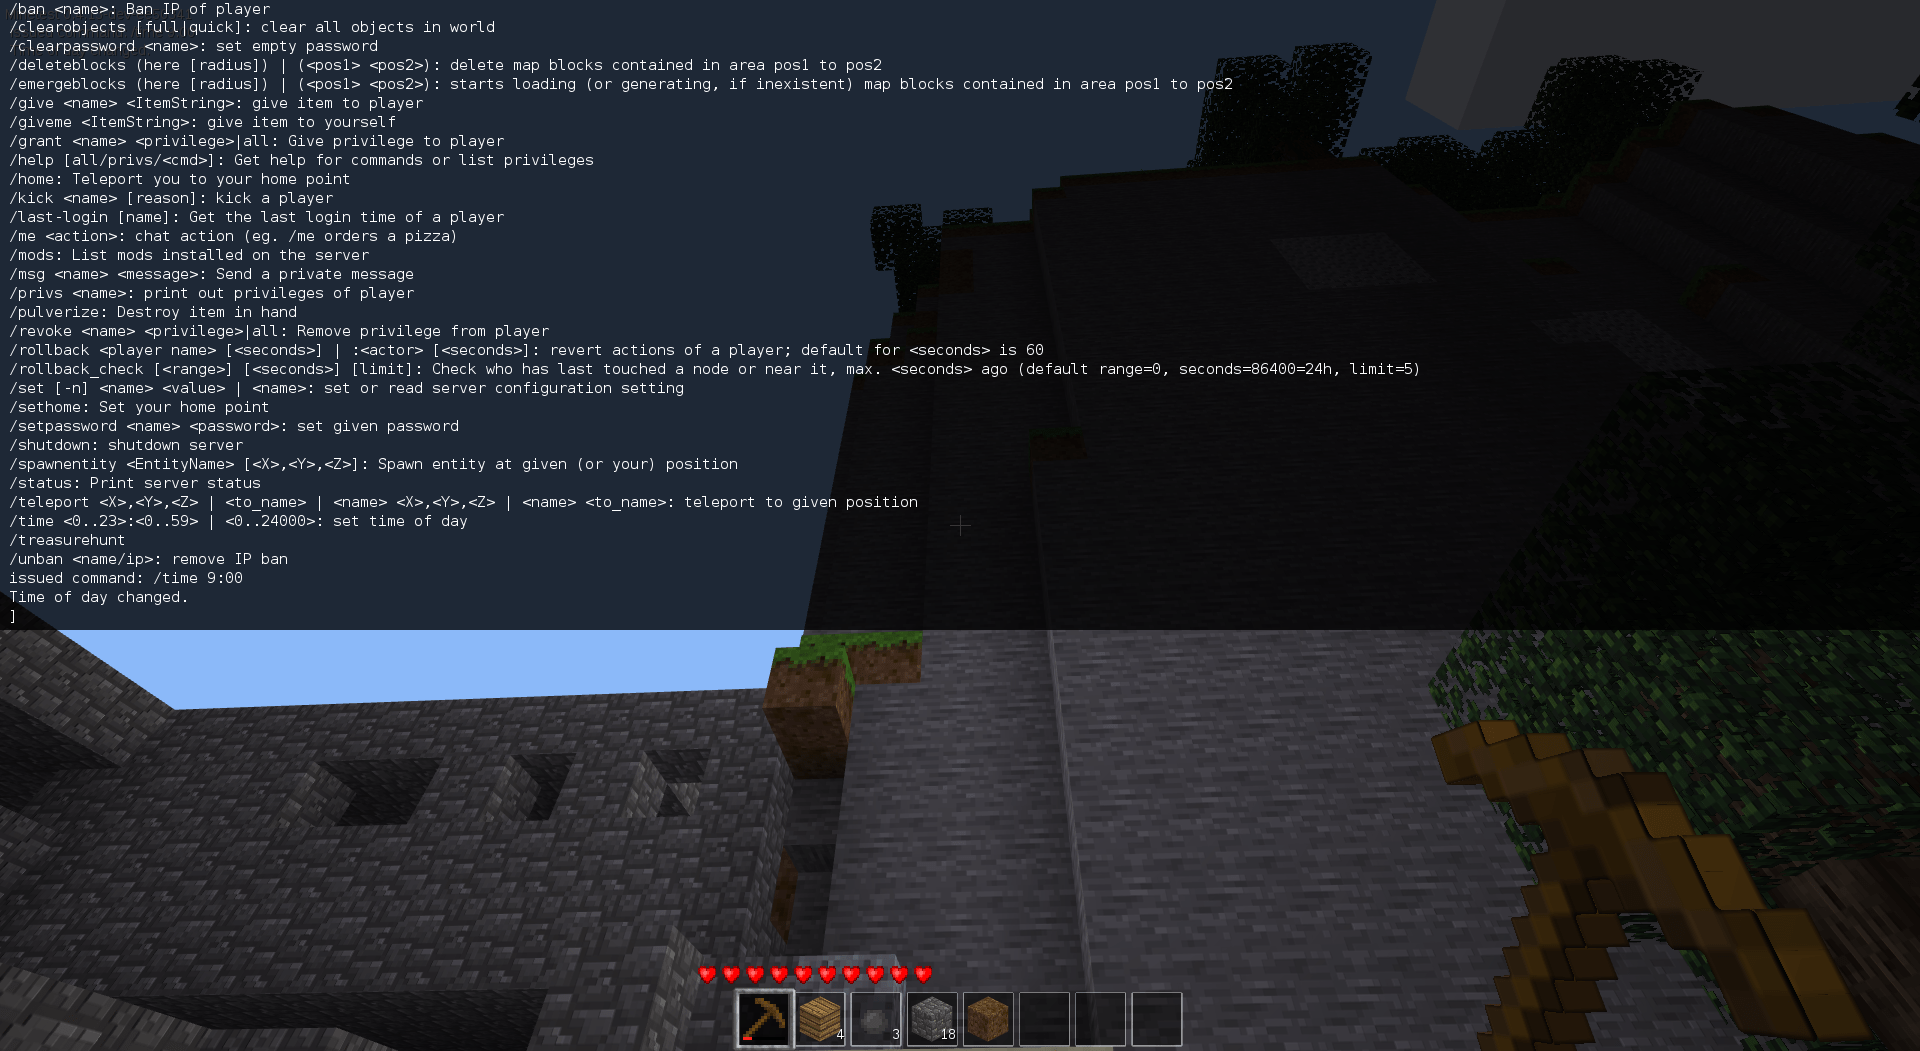 Use the HUD to send chat messages or input commands.